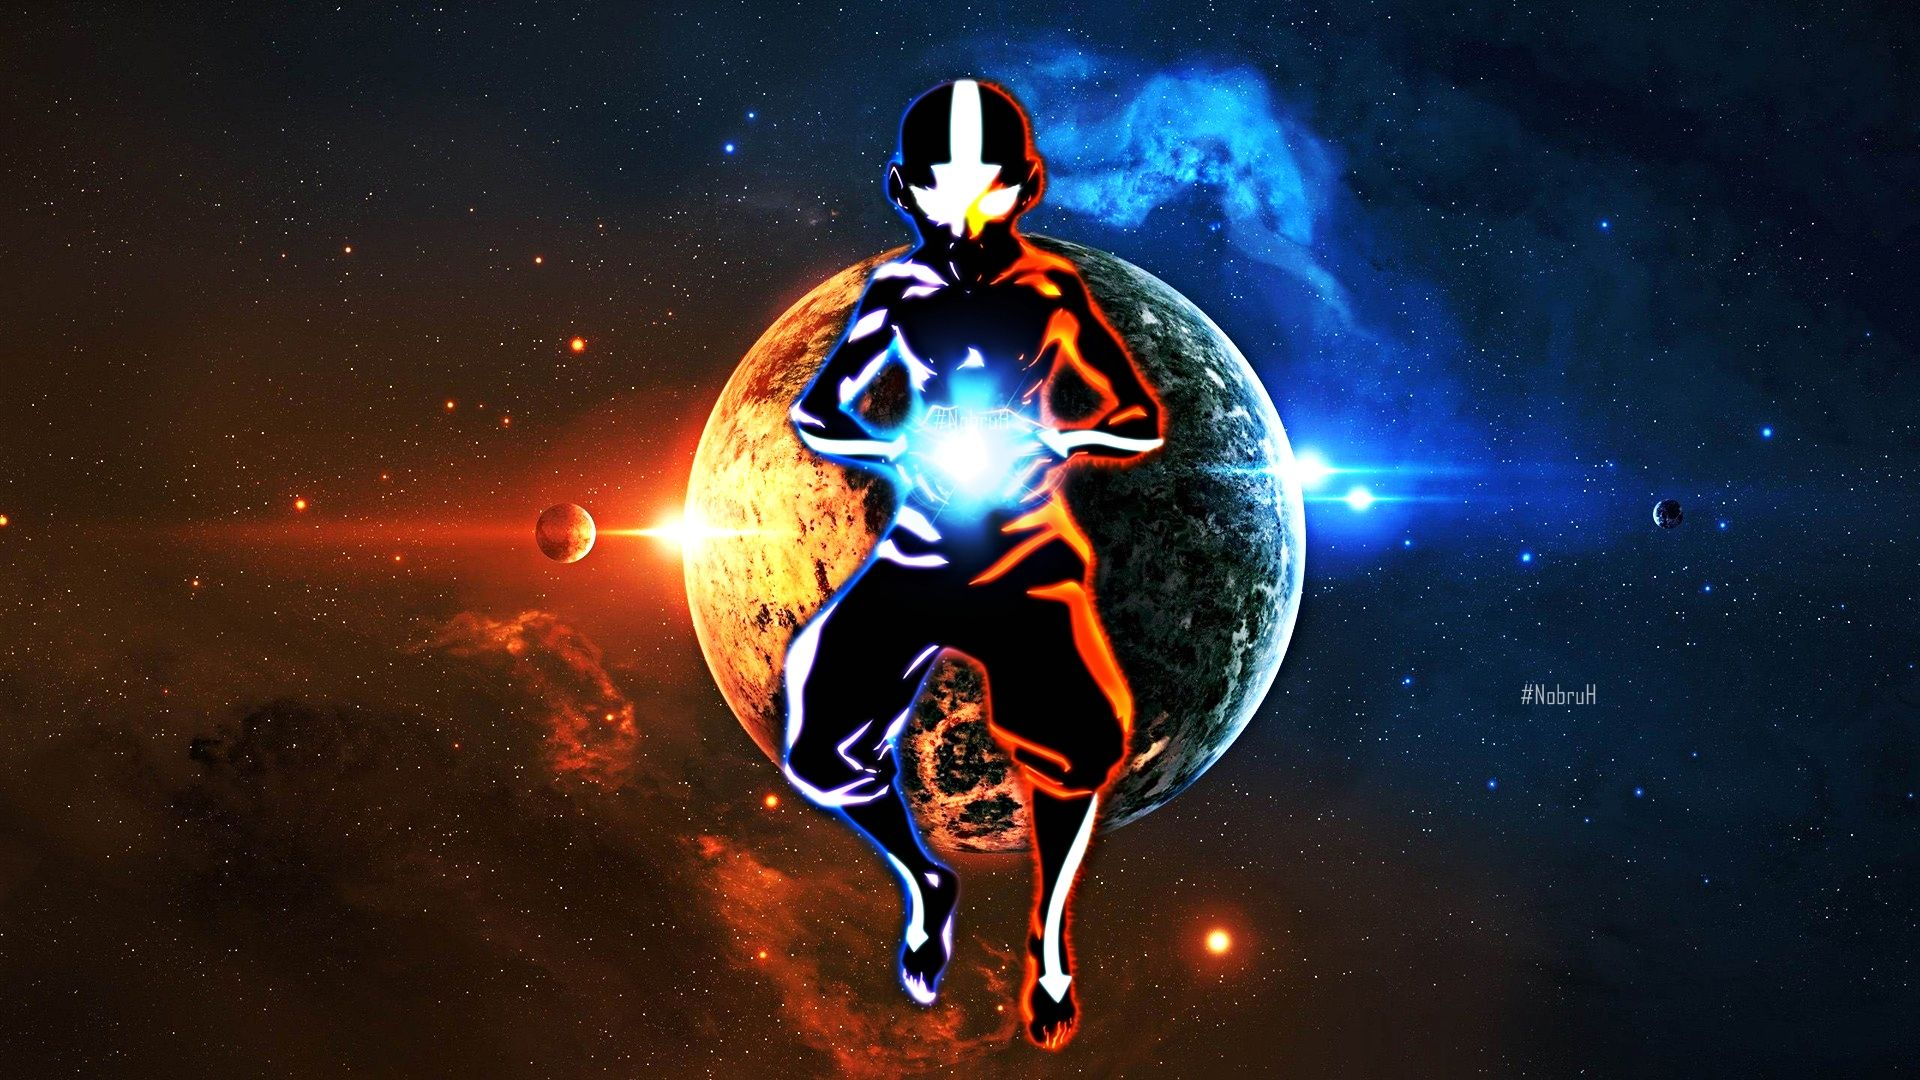 avatar the last airbender wallpaper Google Search